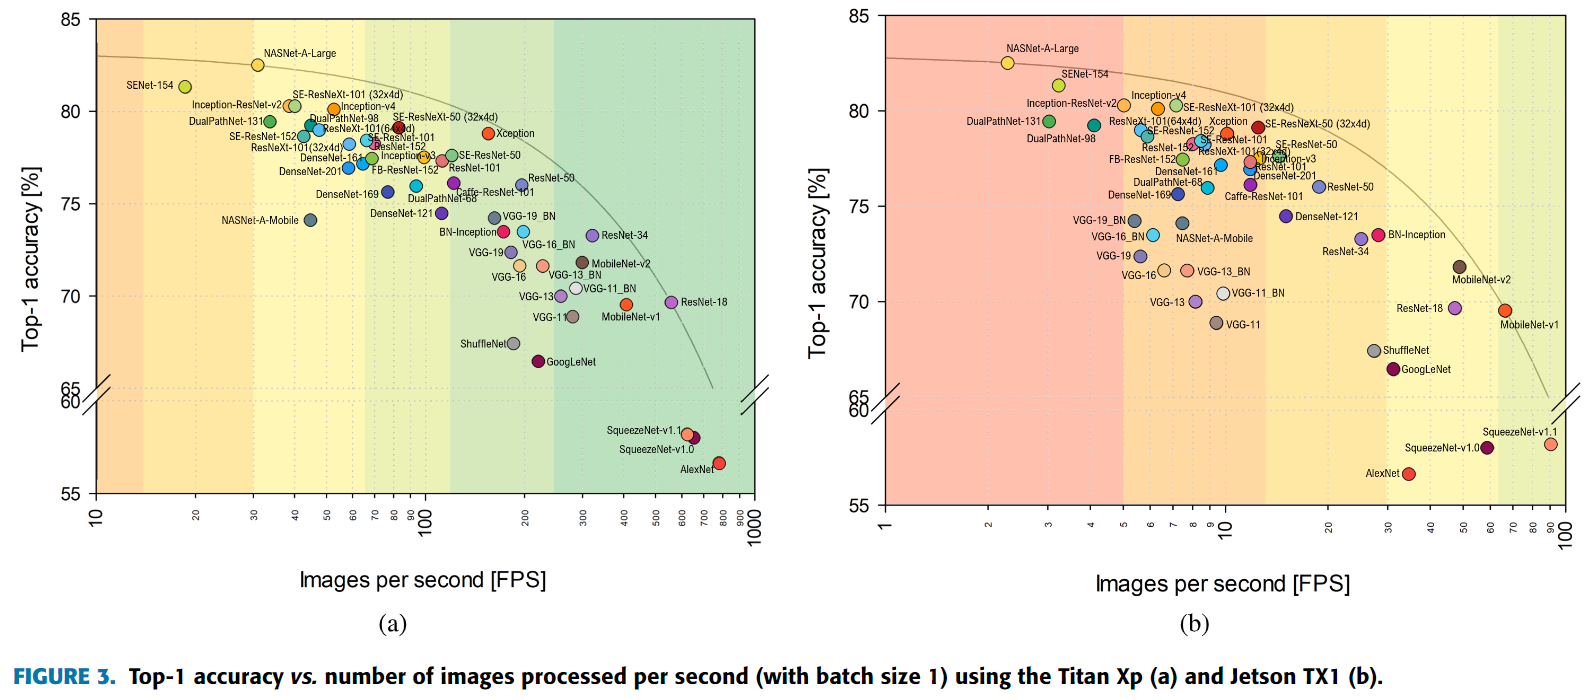 Top-1 accuracyvs.number of images processed per second (with batch size 1)